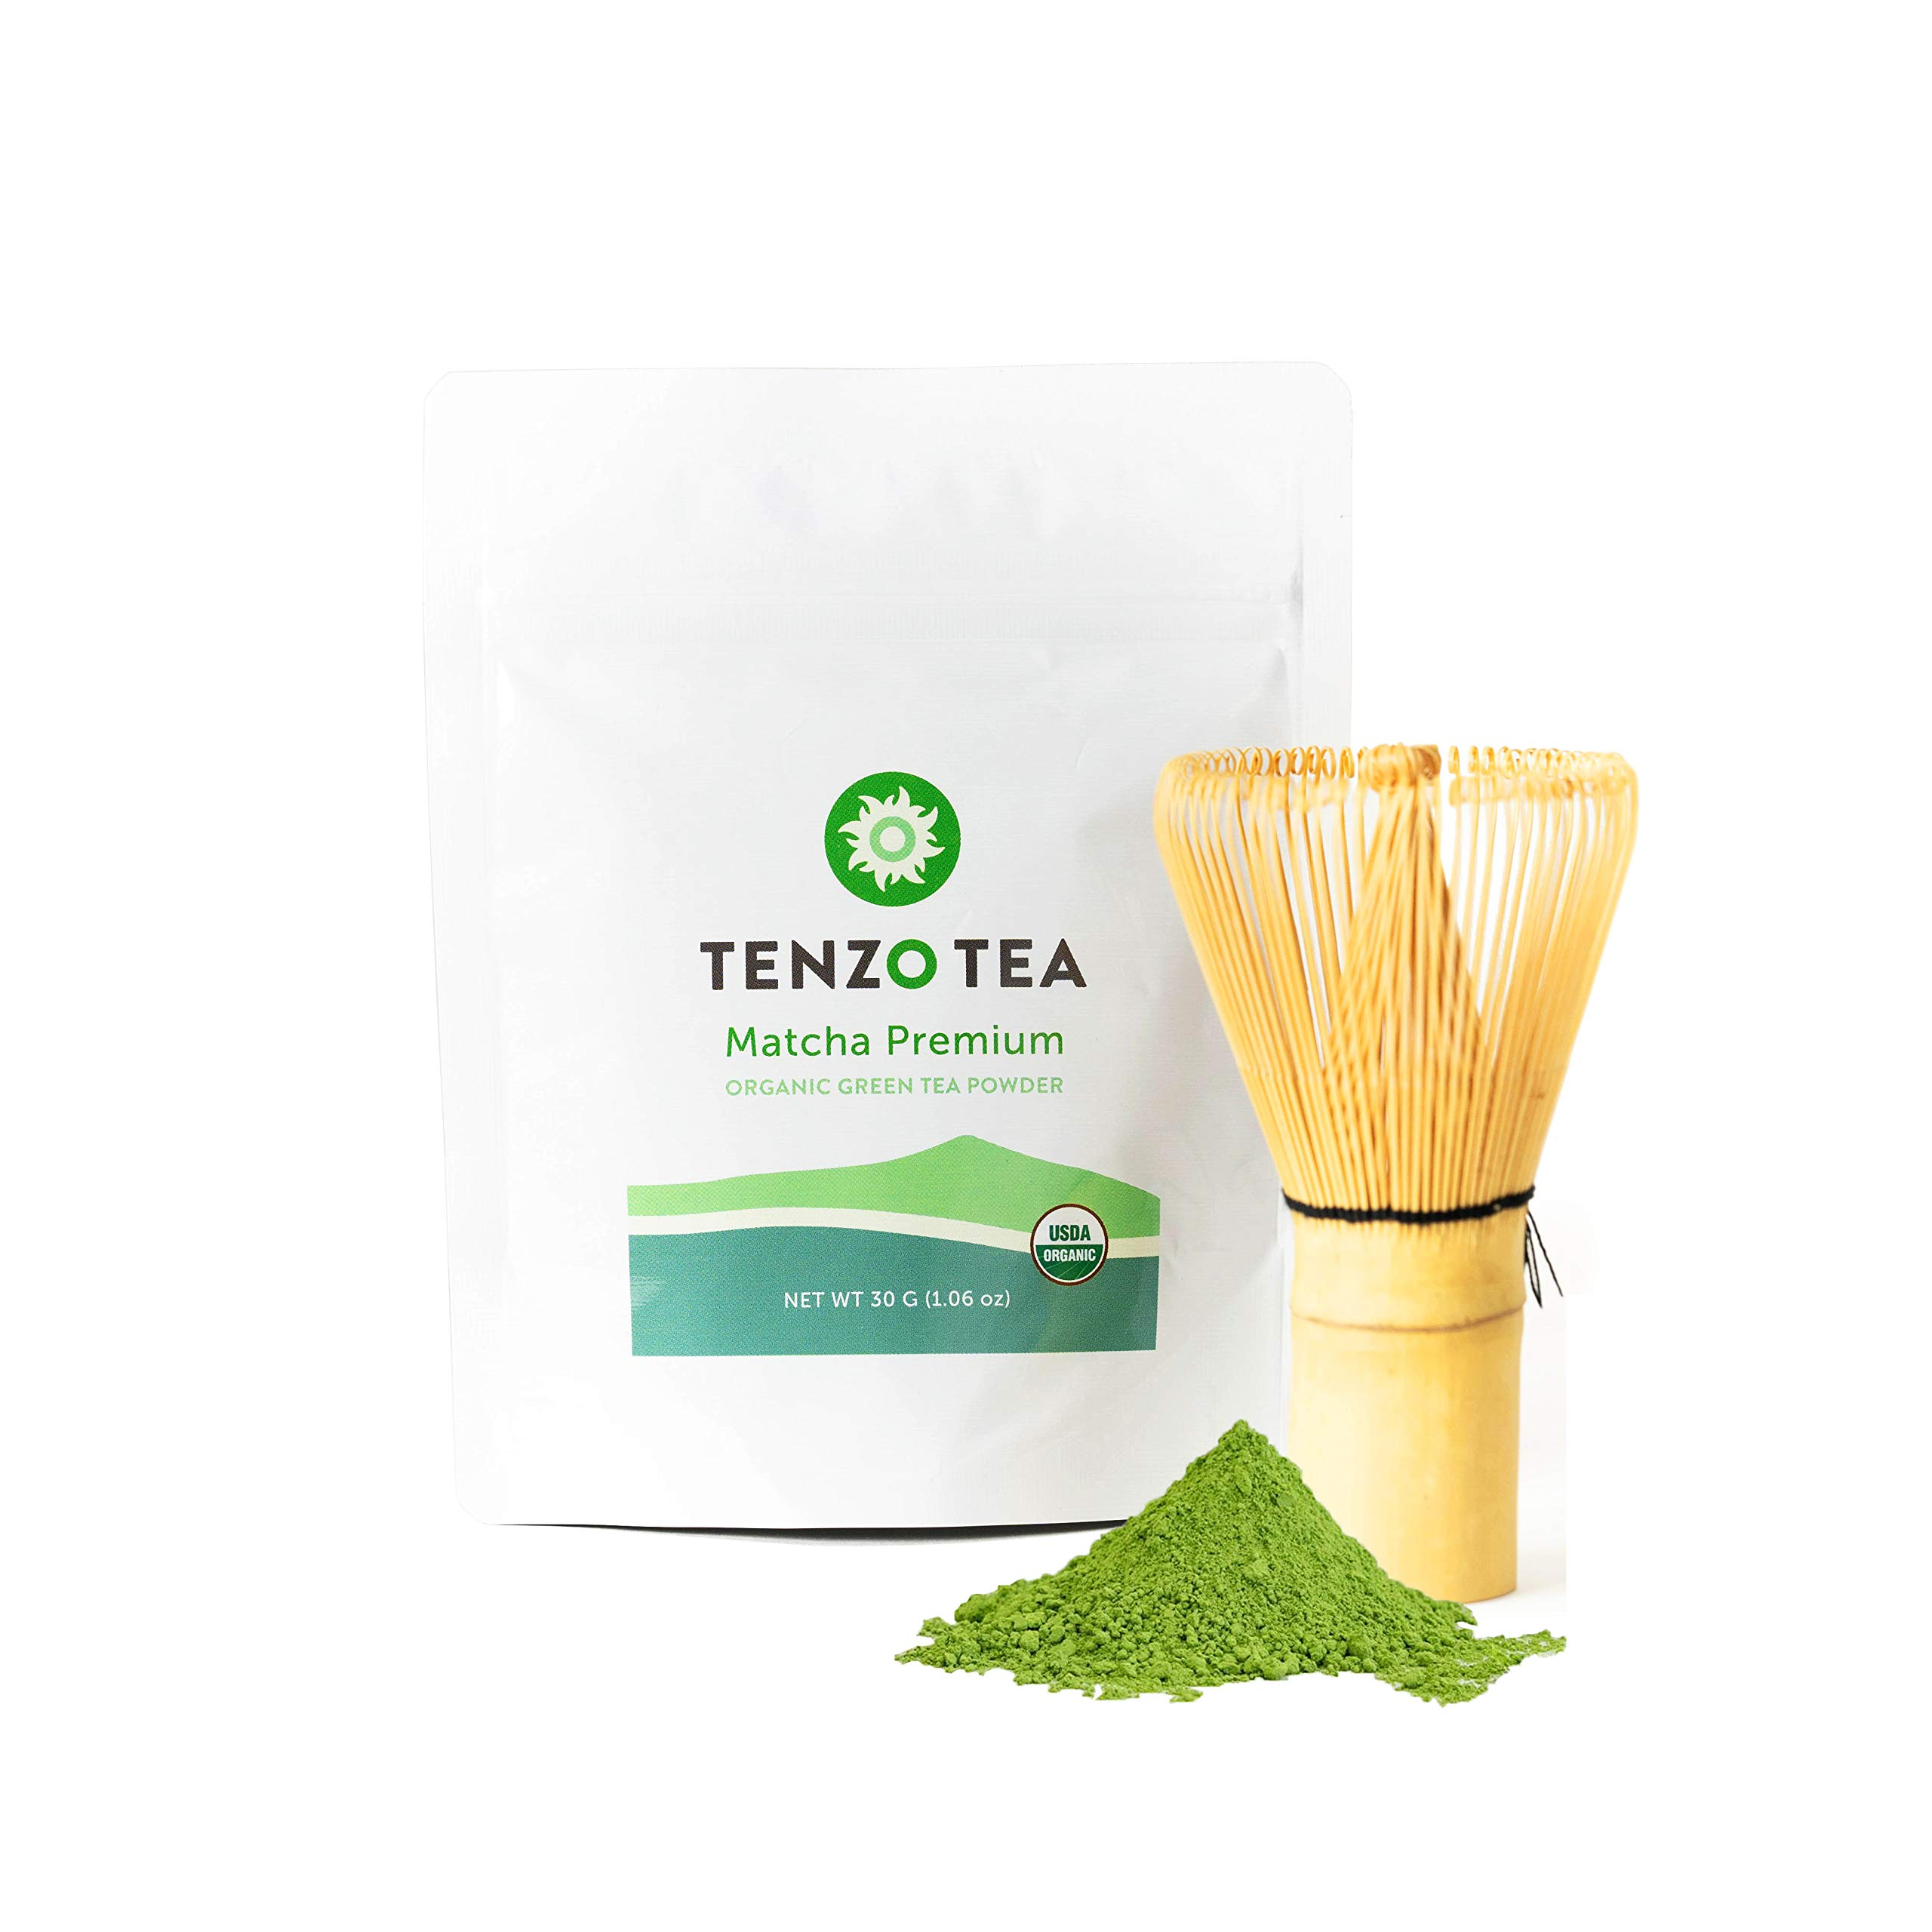 Tenzo Tea (Whisk Included in Box) - Ceremonial Grade Matcha Green Tea Powder (For Sipping as Tea) - USDA Organic, Kosher, Vegan, Paleo/Keto Friendly (30 Gram + Whisk) by Tenzo Tea